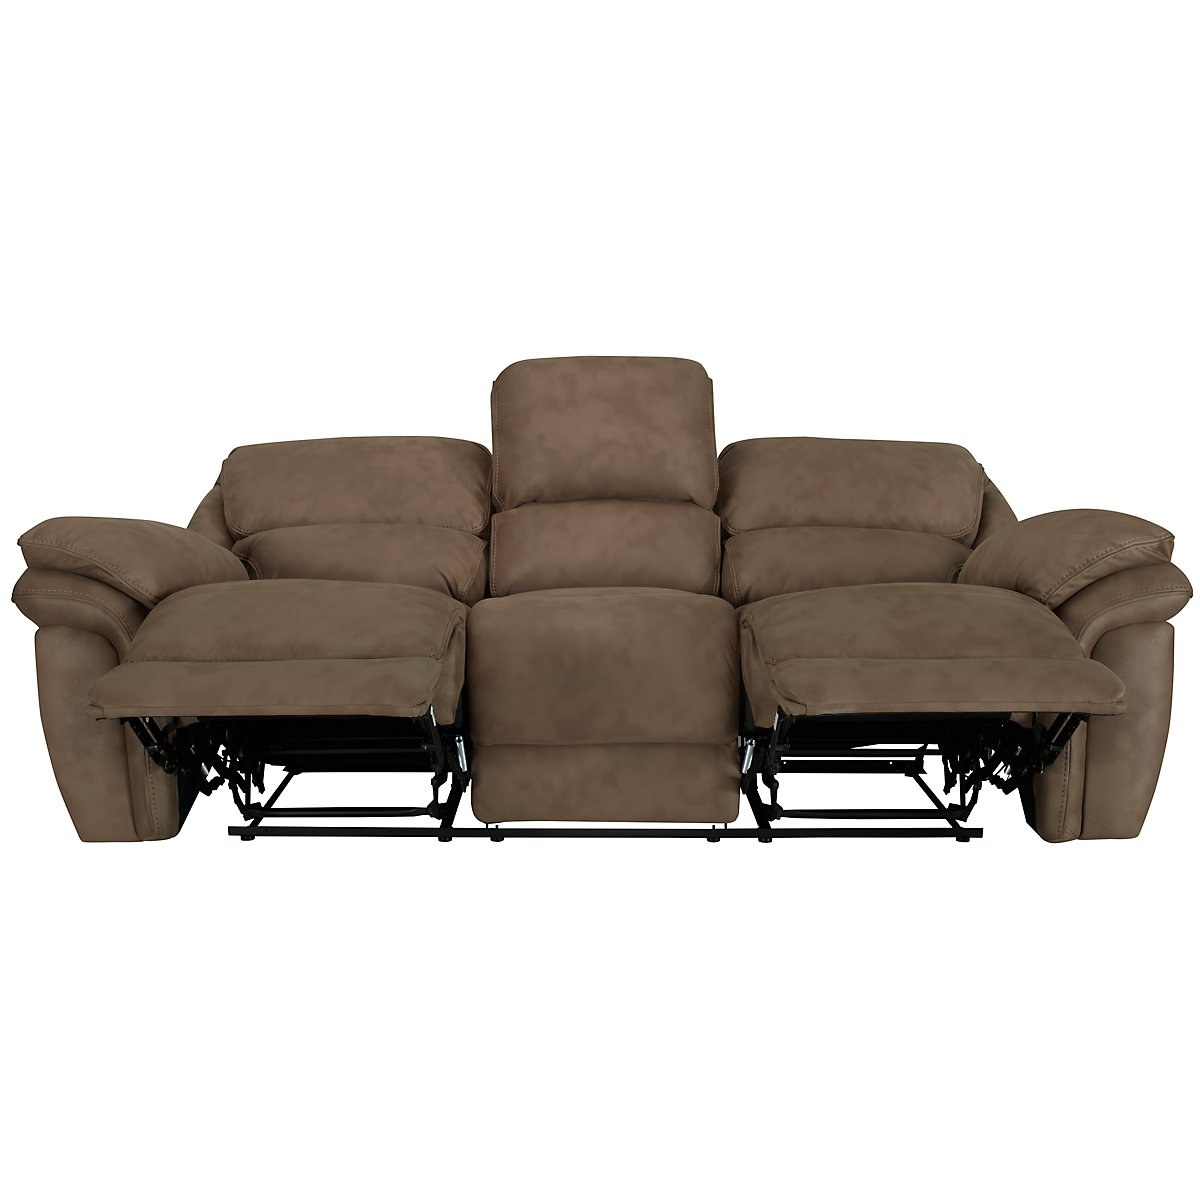 Kirsten Medium Brown Microfiber Reclining Sofa View Larger